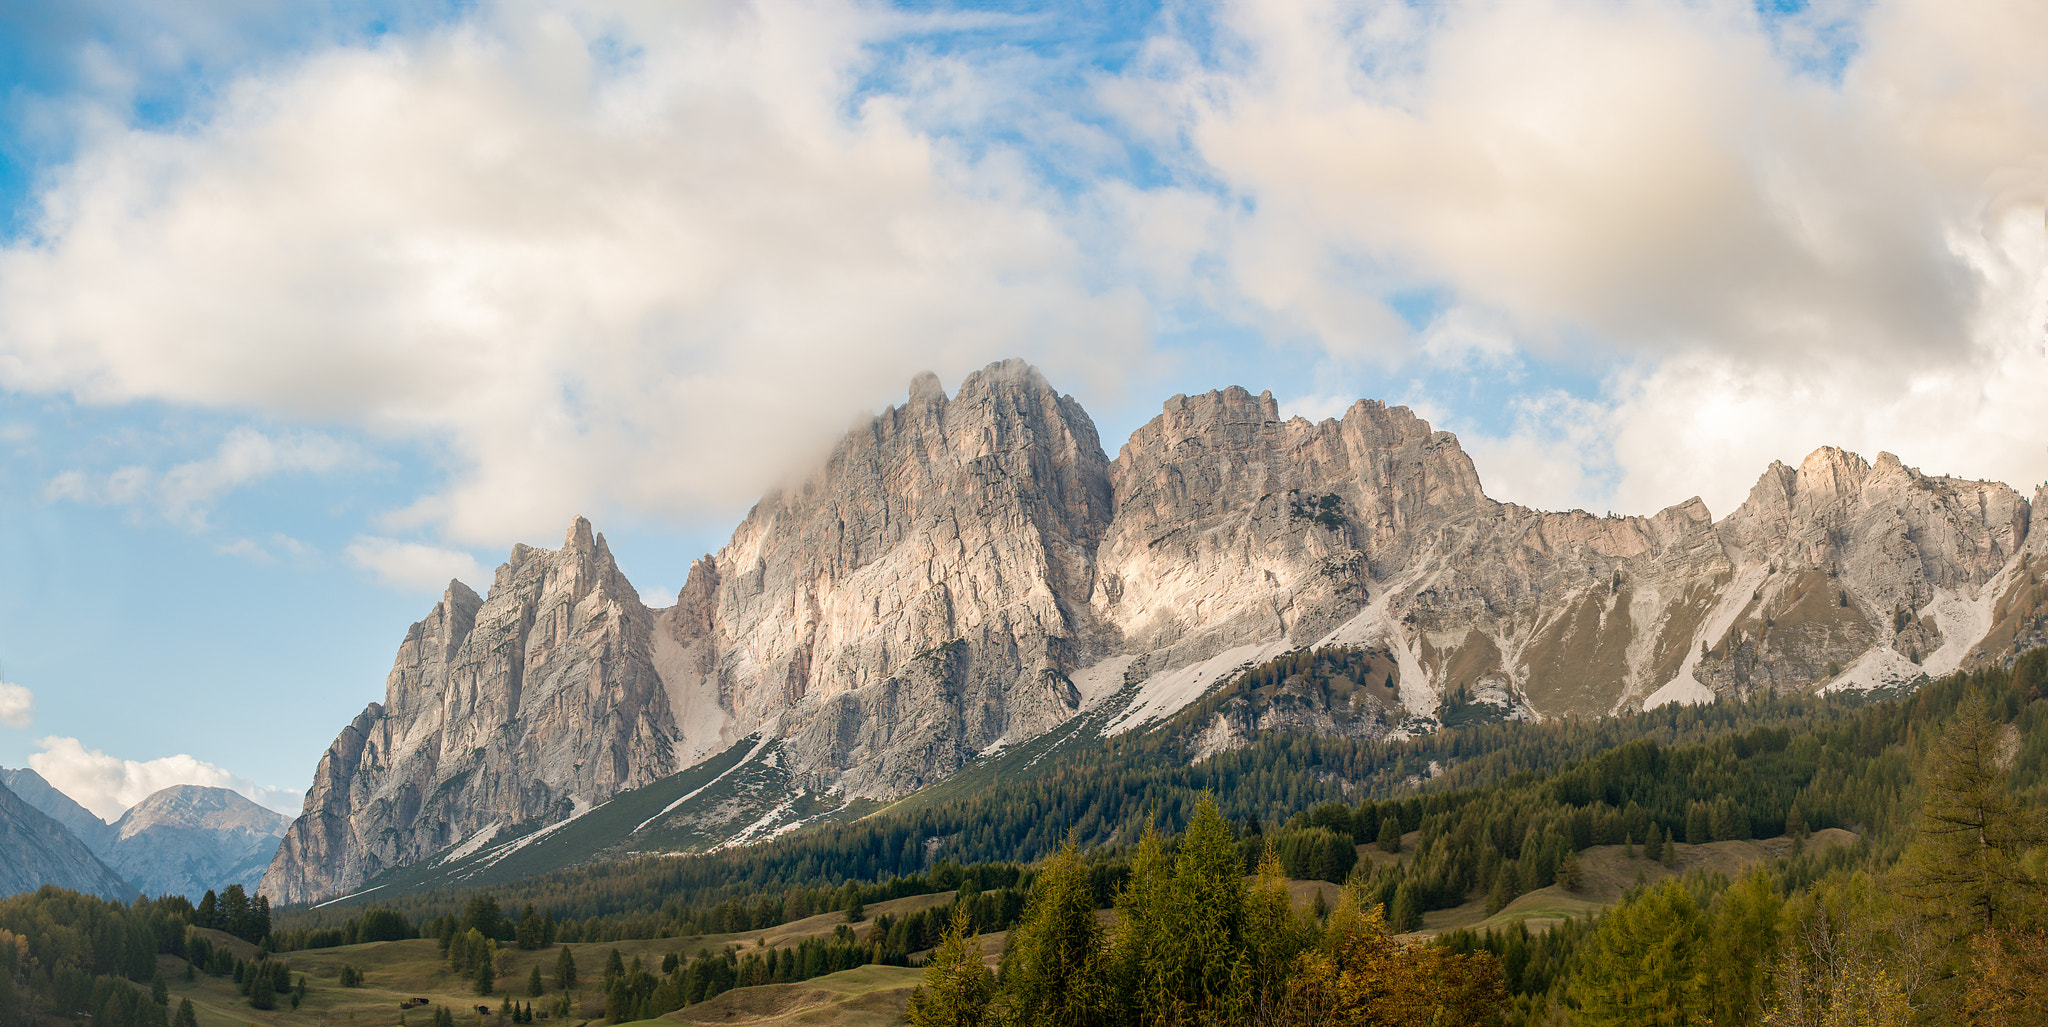 Photograph Cortina di Ampezzo by Bernhard Weishaupt on 500px